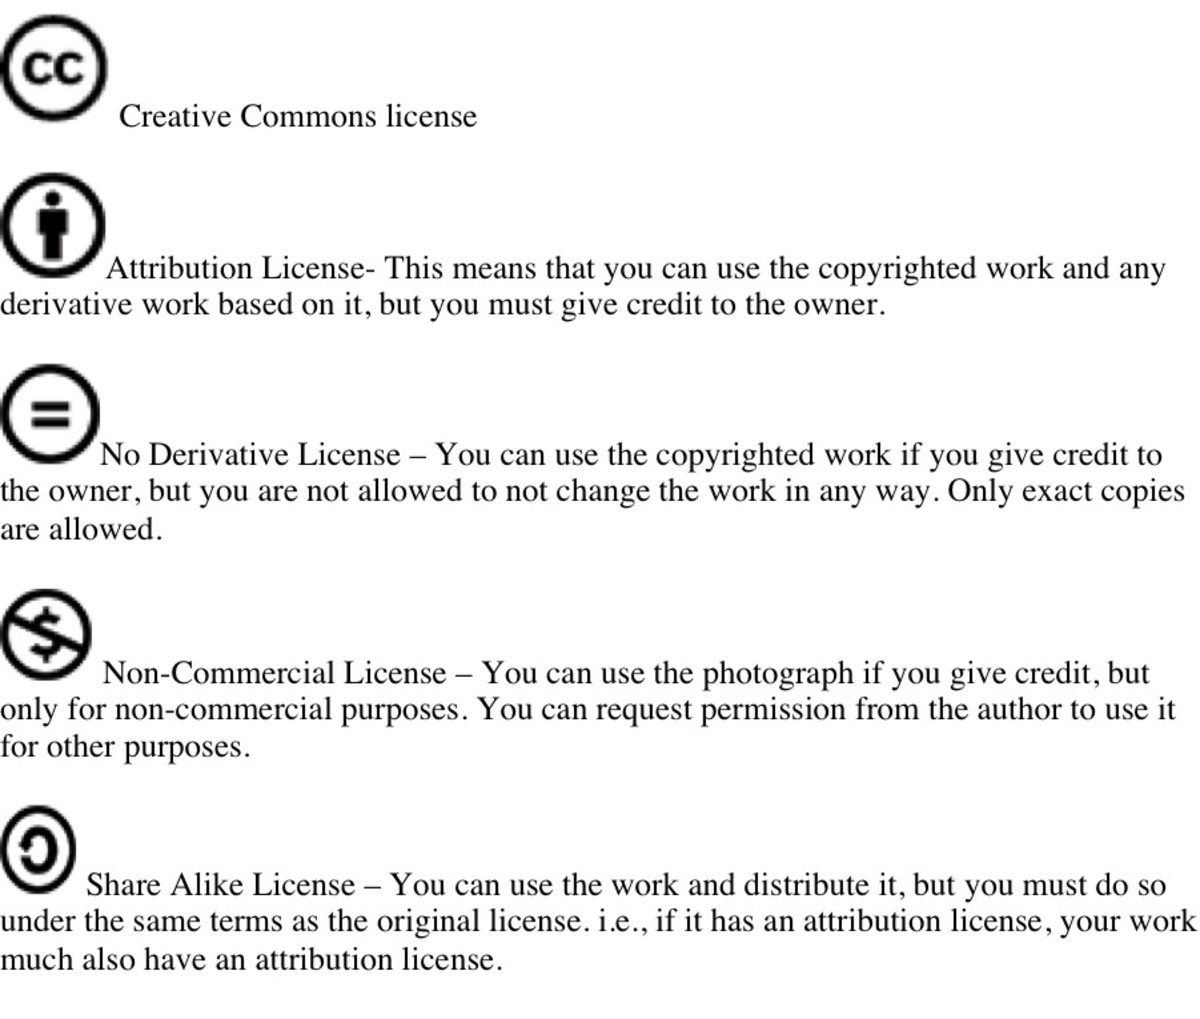 Creative Commons symbols may be combined to indicate specific uses.